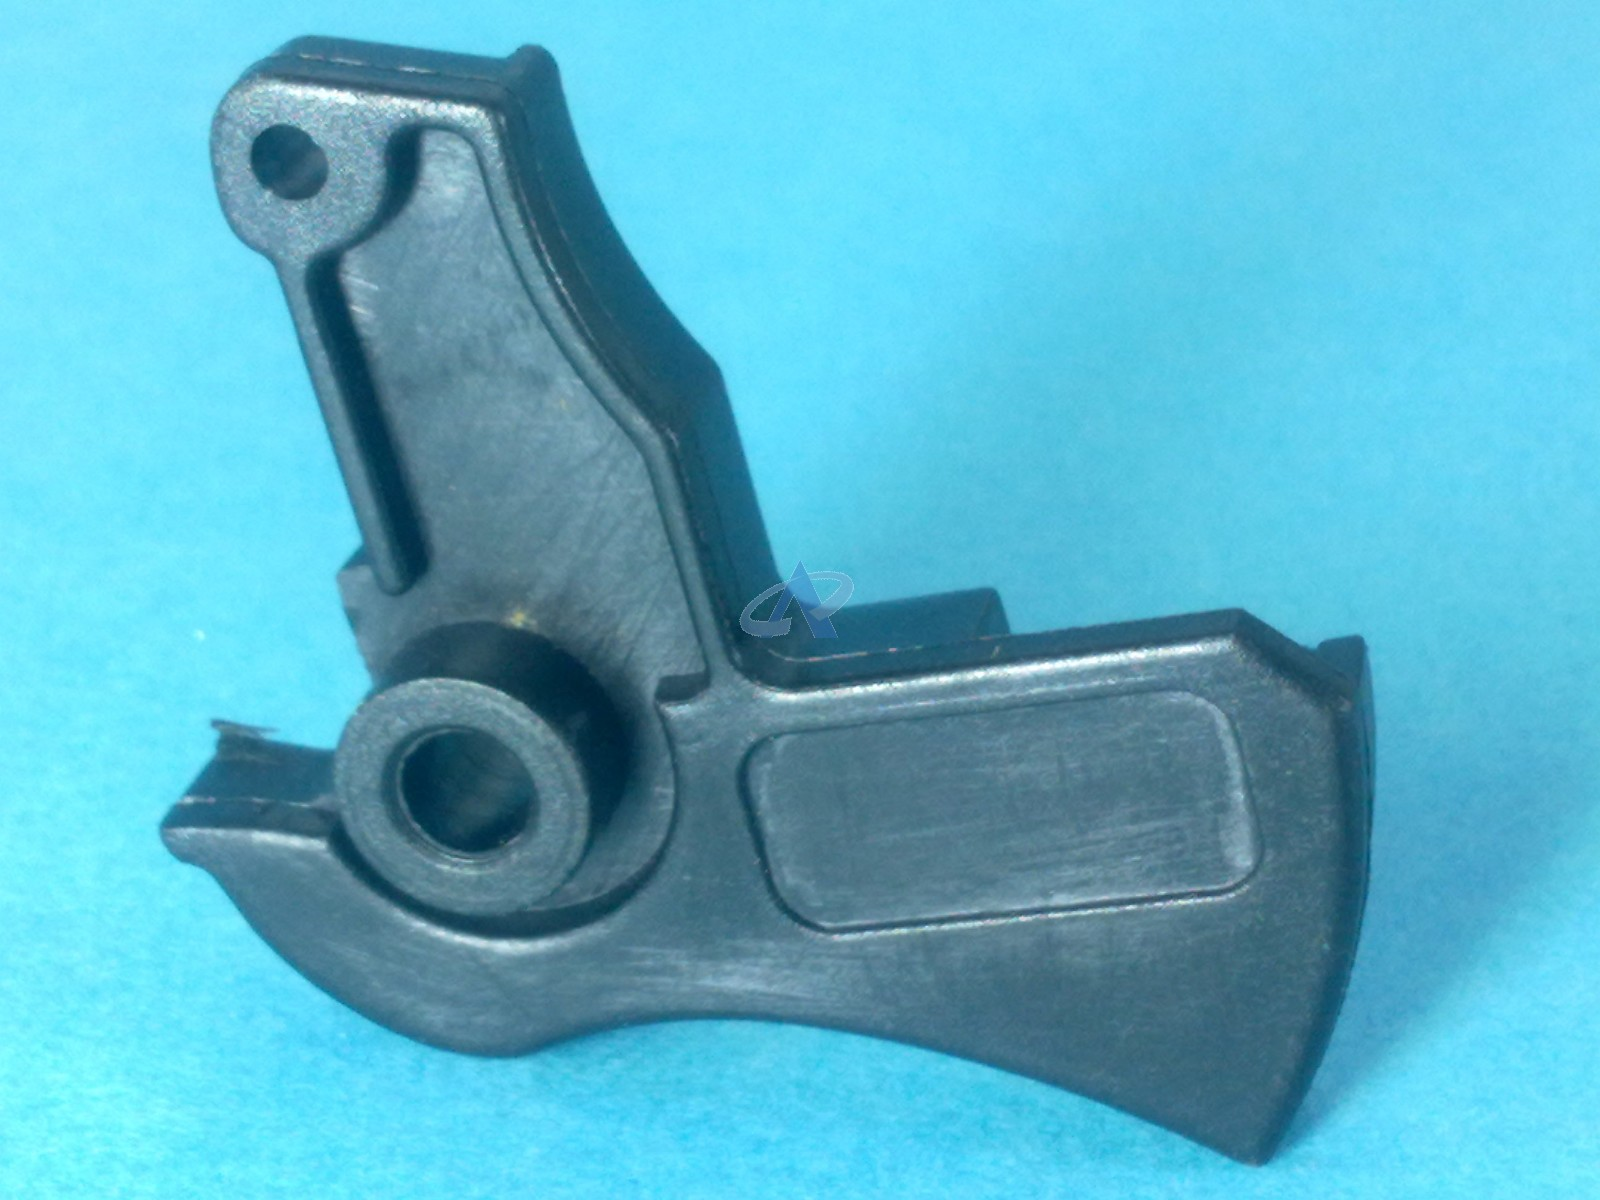 Throttle Trigger for STIHL 028, MS 270, MS 280, MS 360, MS 361, MS 380, MS  381